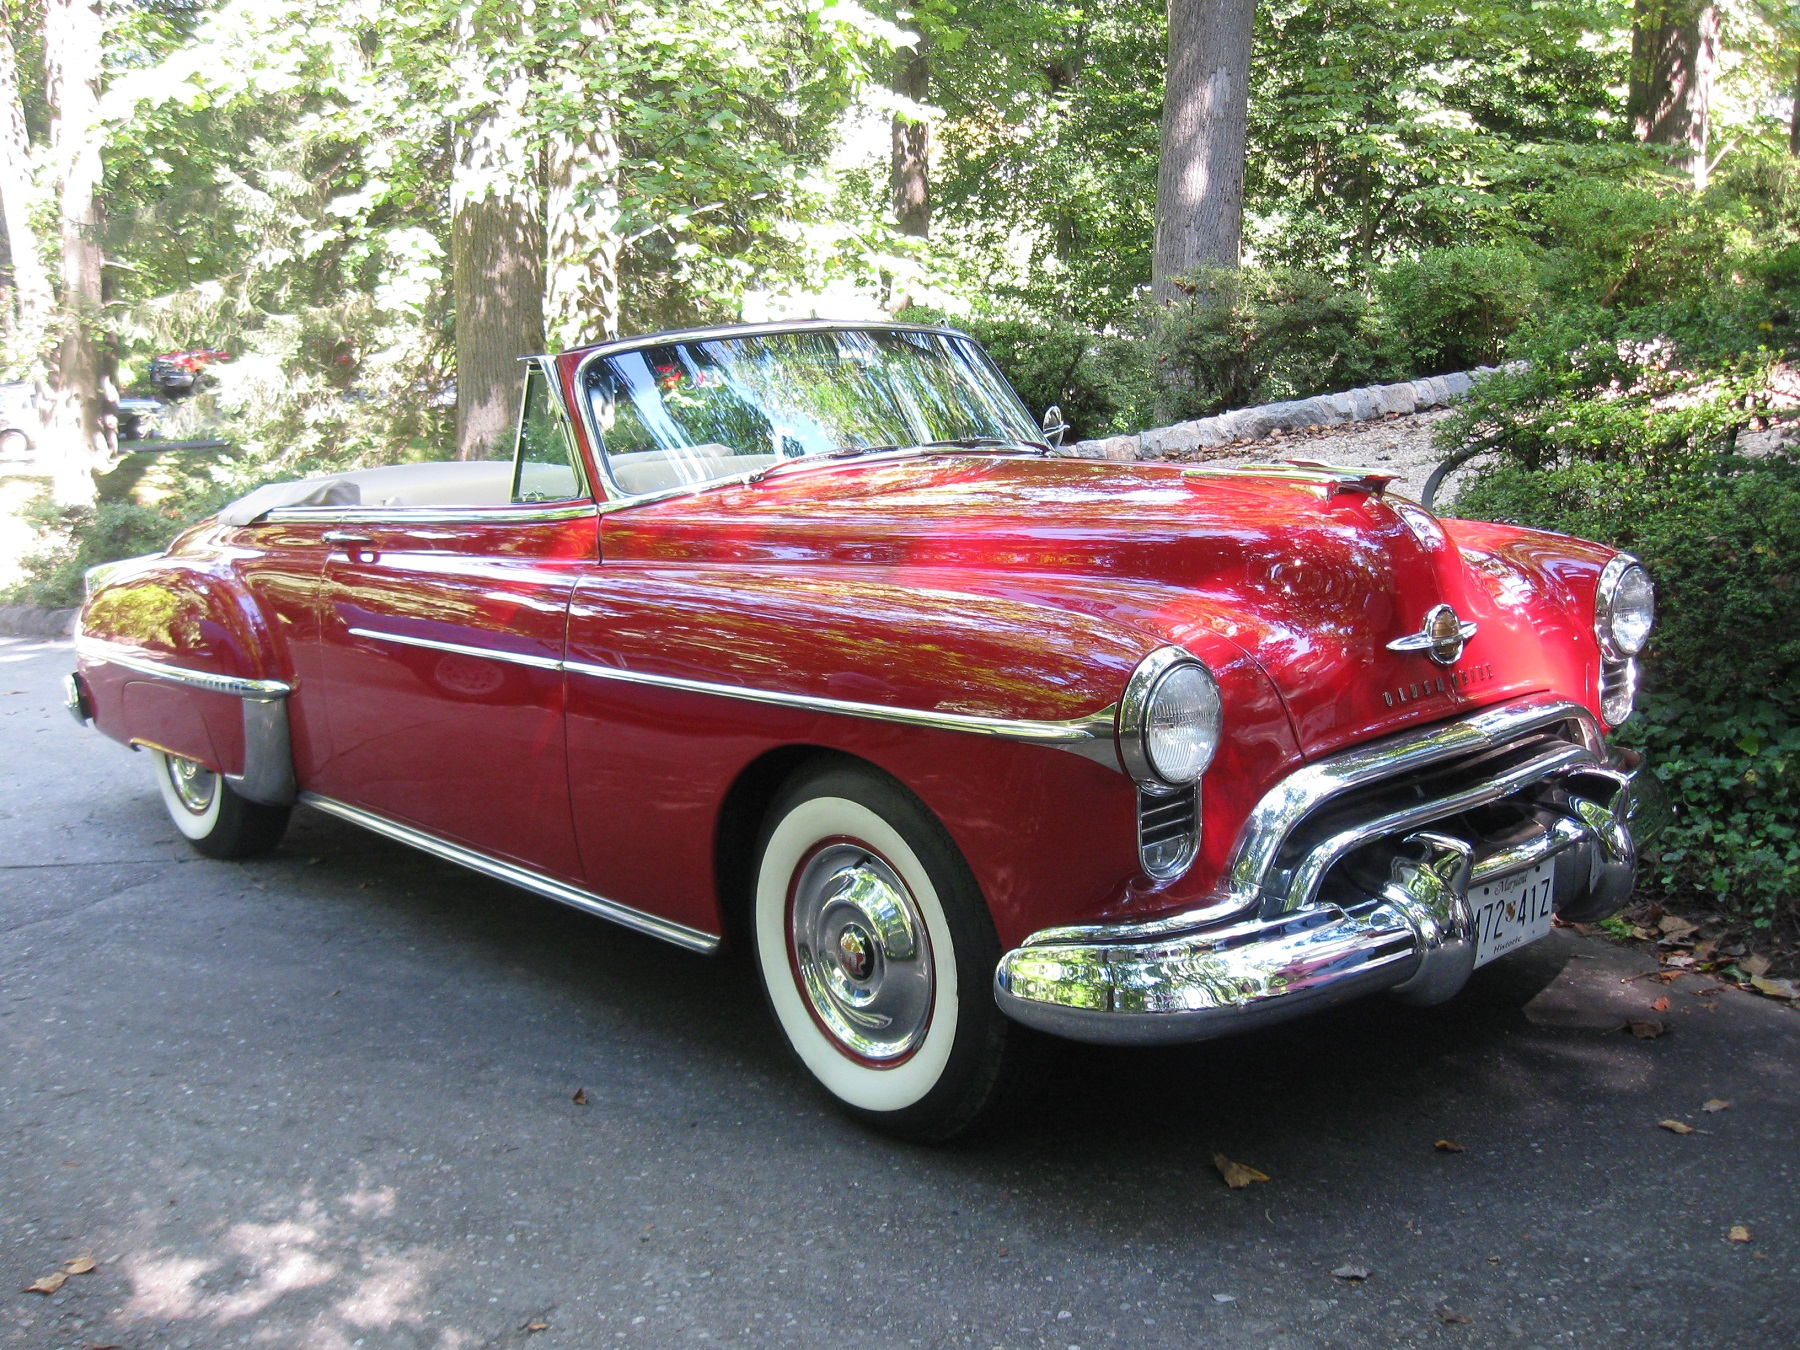 https://www.groovecar.com/media/images/articles/2014/10/classic-classics/1950-oldsmobile-88-coupe-convertible-v-8/1950-oldsmobile-88-coupe-convertible-v-8-1.jpg